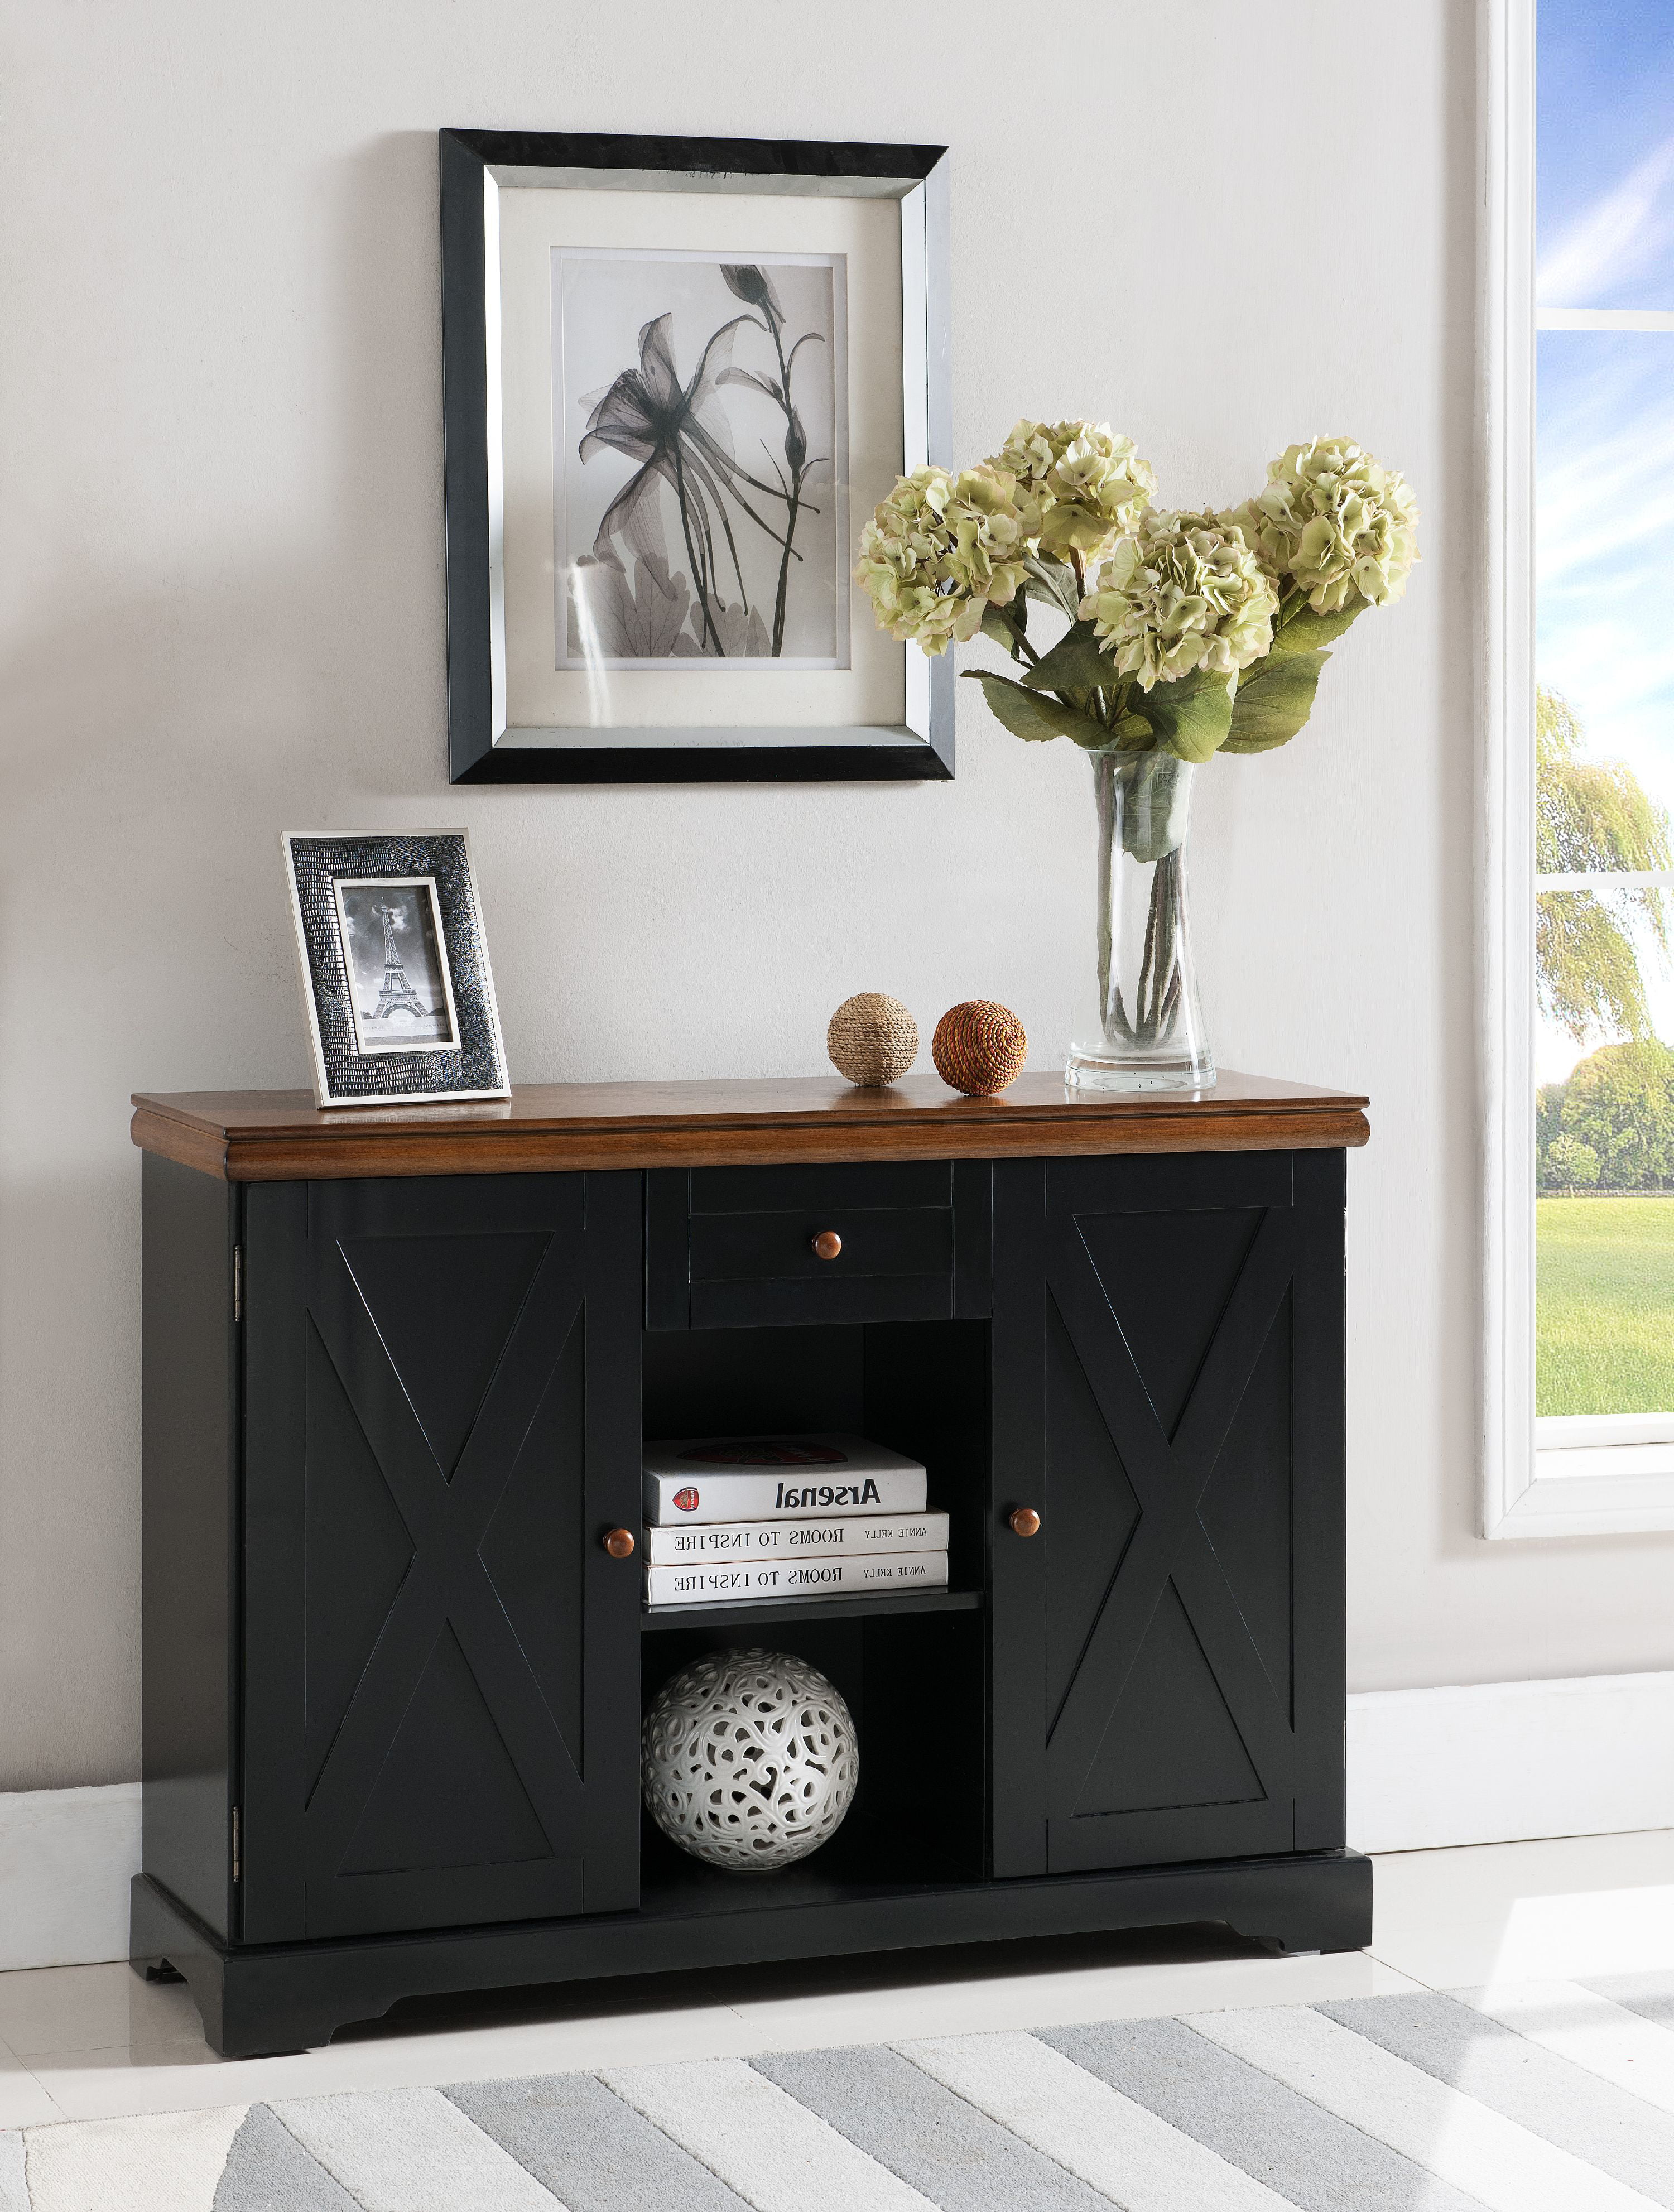 James Sideboard Buffet Cabinet Console Table With Storage Drawer Adjustable Shelves Black Walnut Top Wood Contemporary Walmart Com Walmart Com